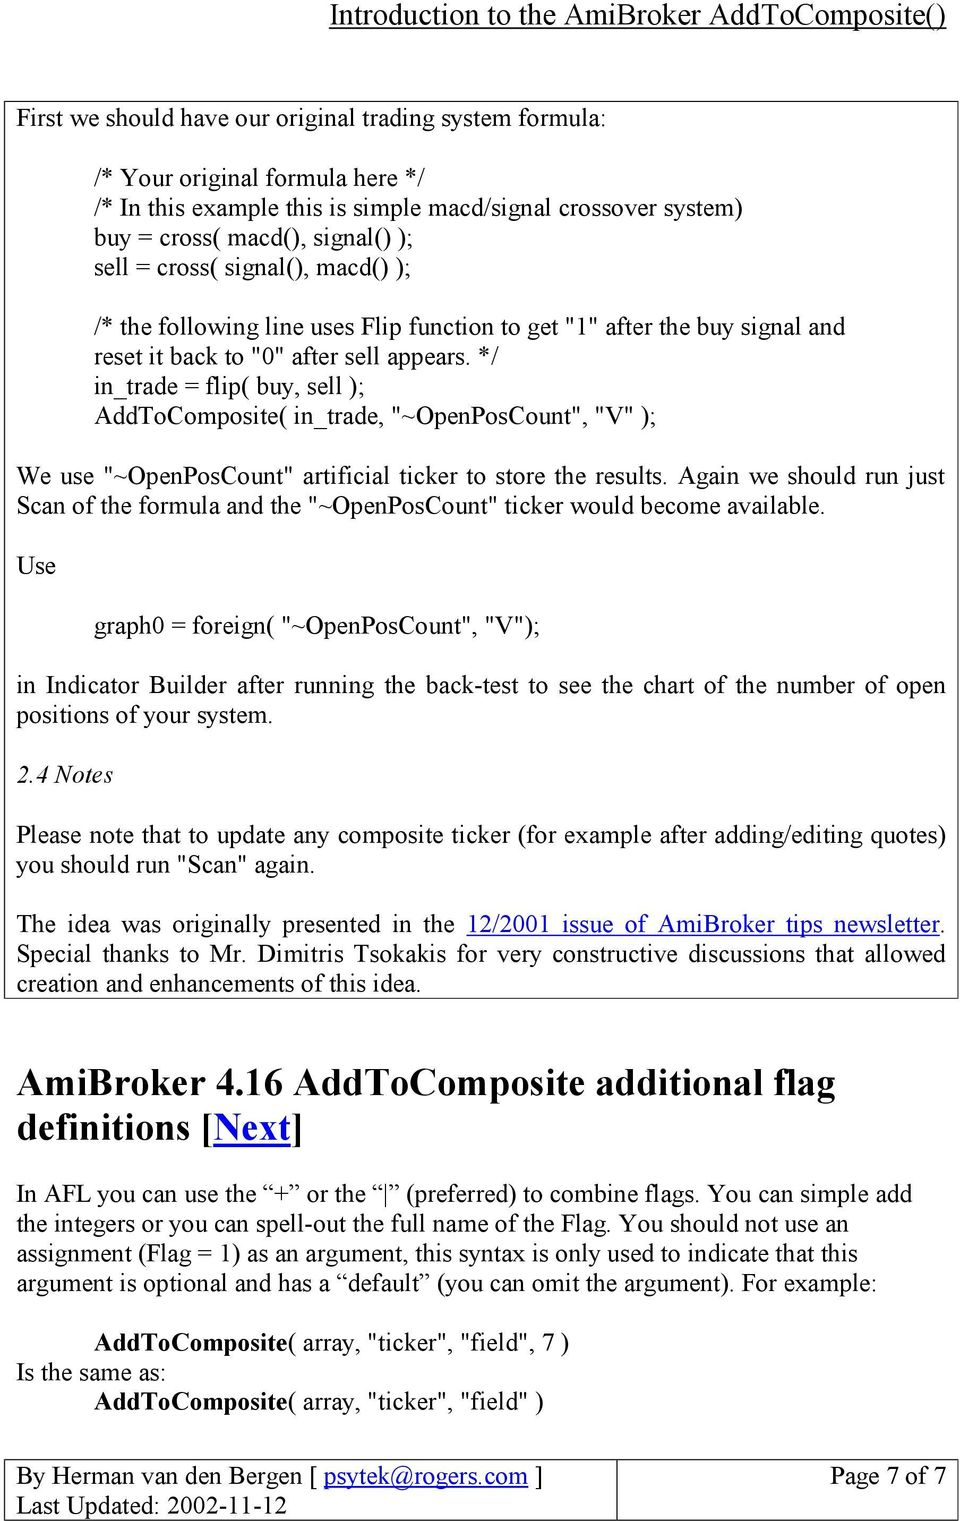 Introduction to the AmiBroker AddToComposite() - PDF